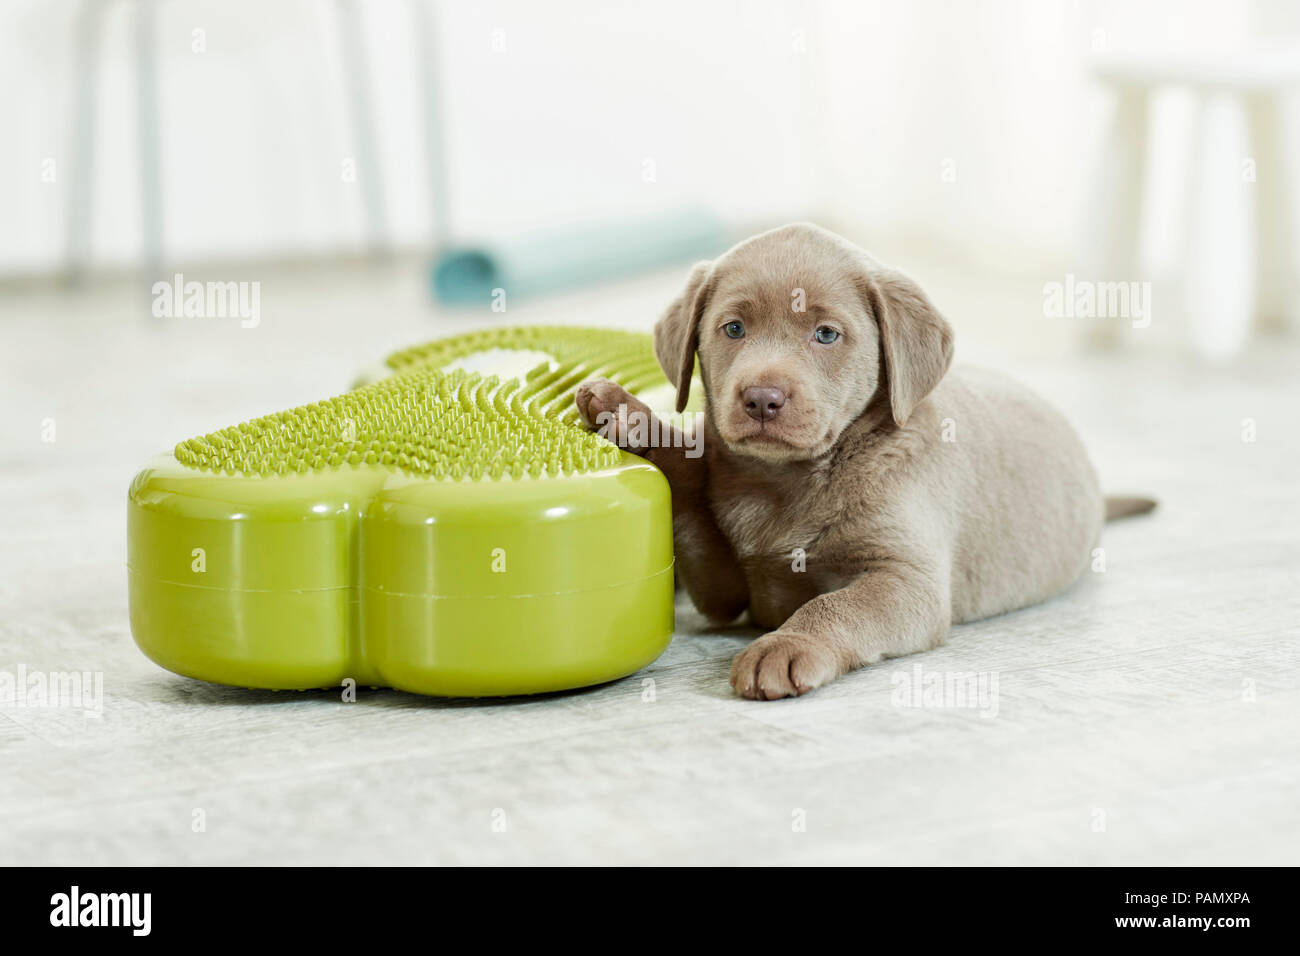 Physical therapy: Labrador Retriever puppy lying next to balance board, a tool used for coordination exercise. Germany - Stock Image